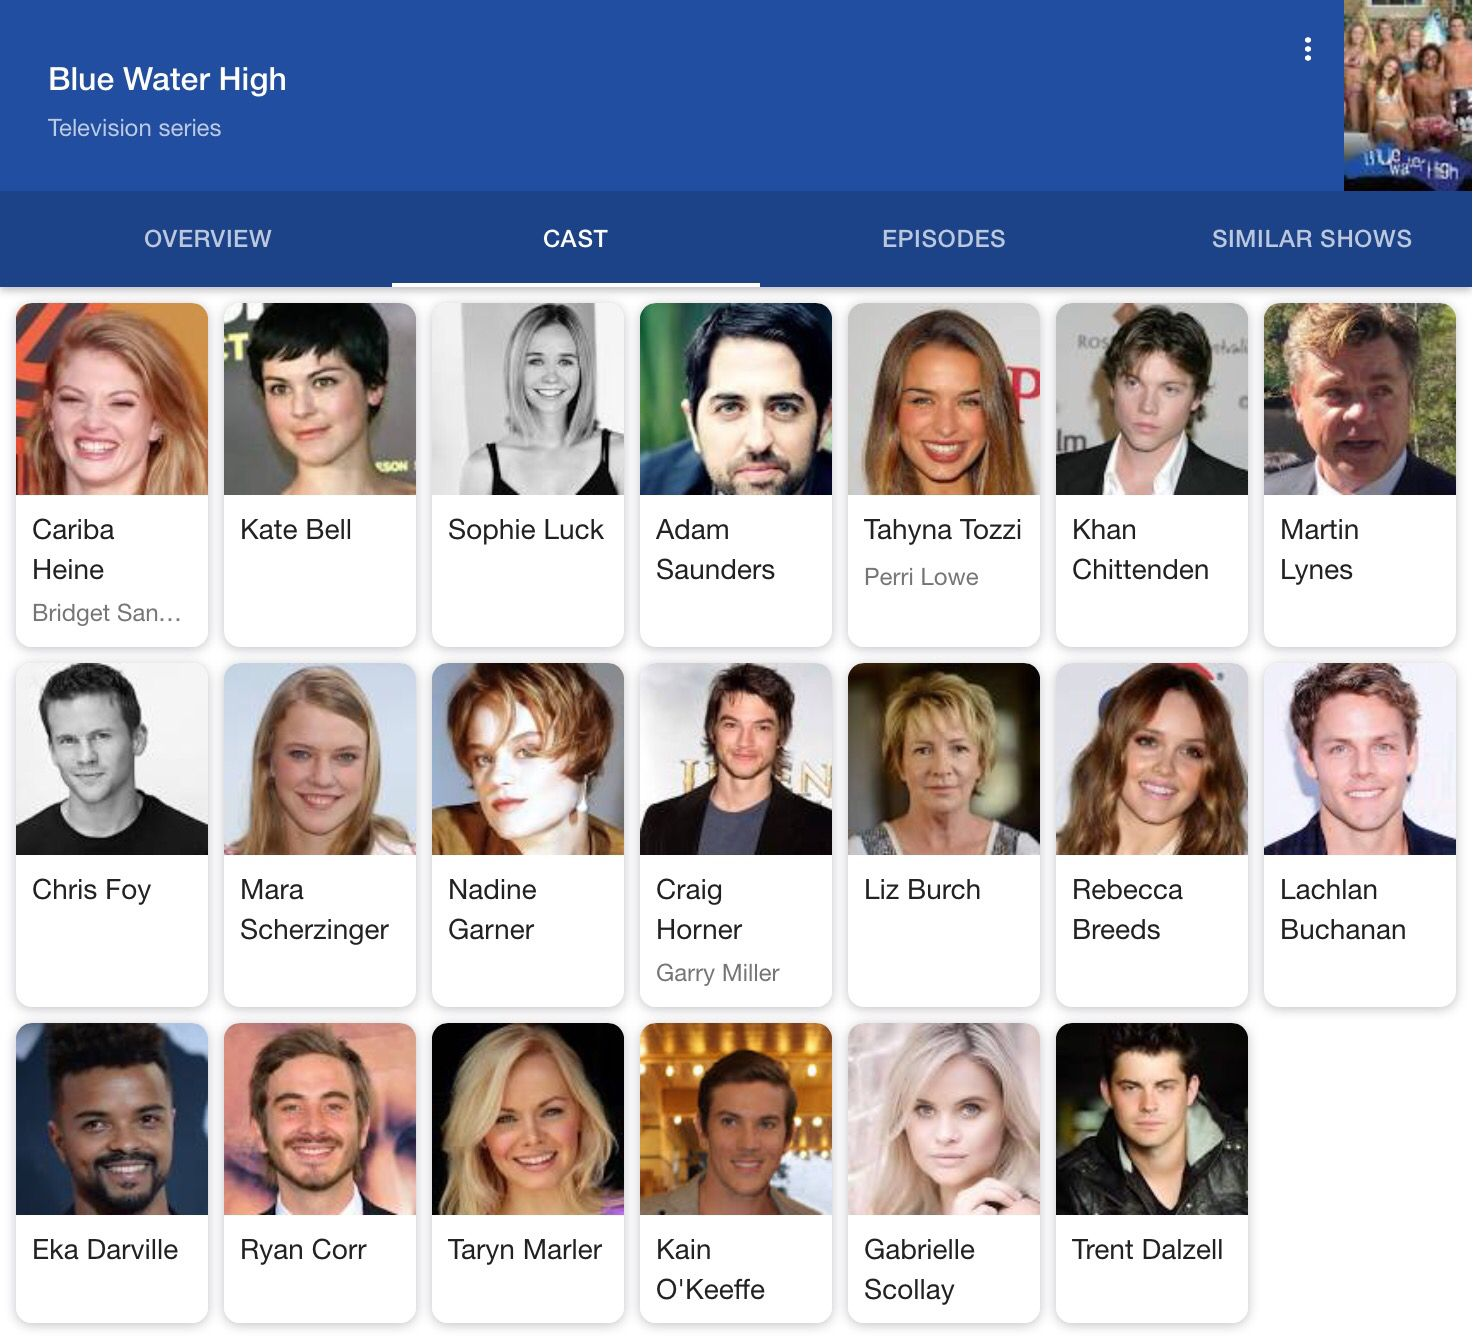 Blue Water High Cast pini'd rather be sailing on sach | movies, photo wall